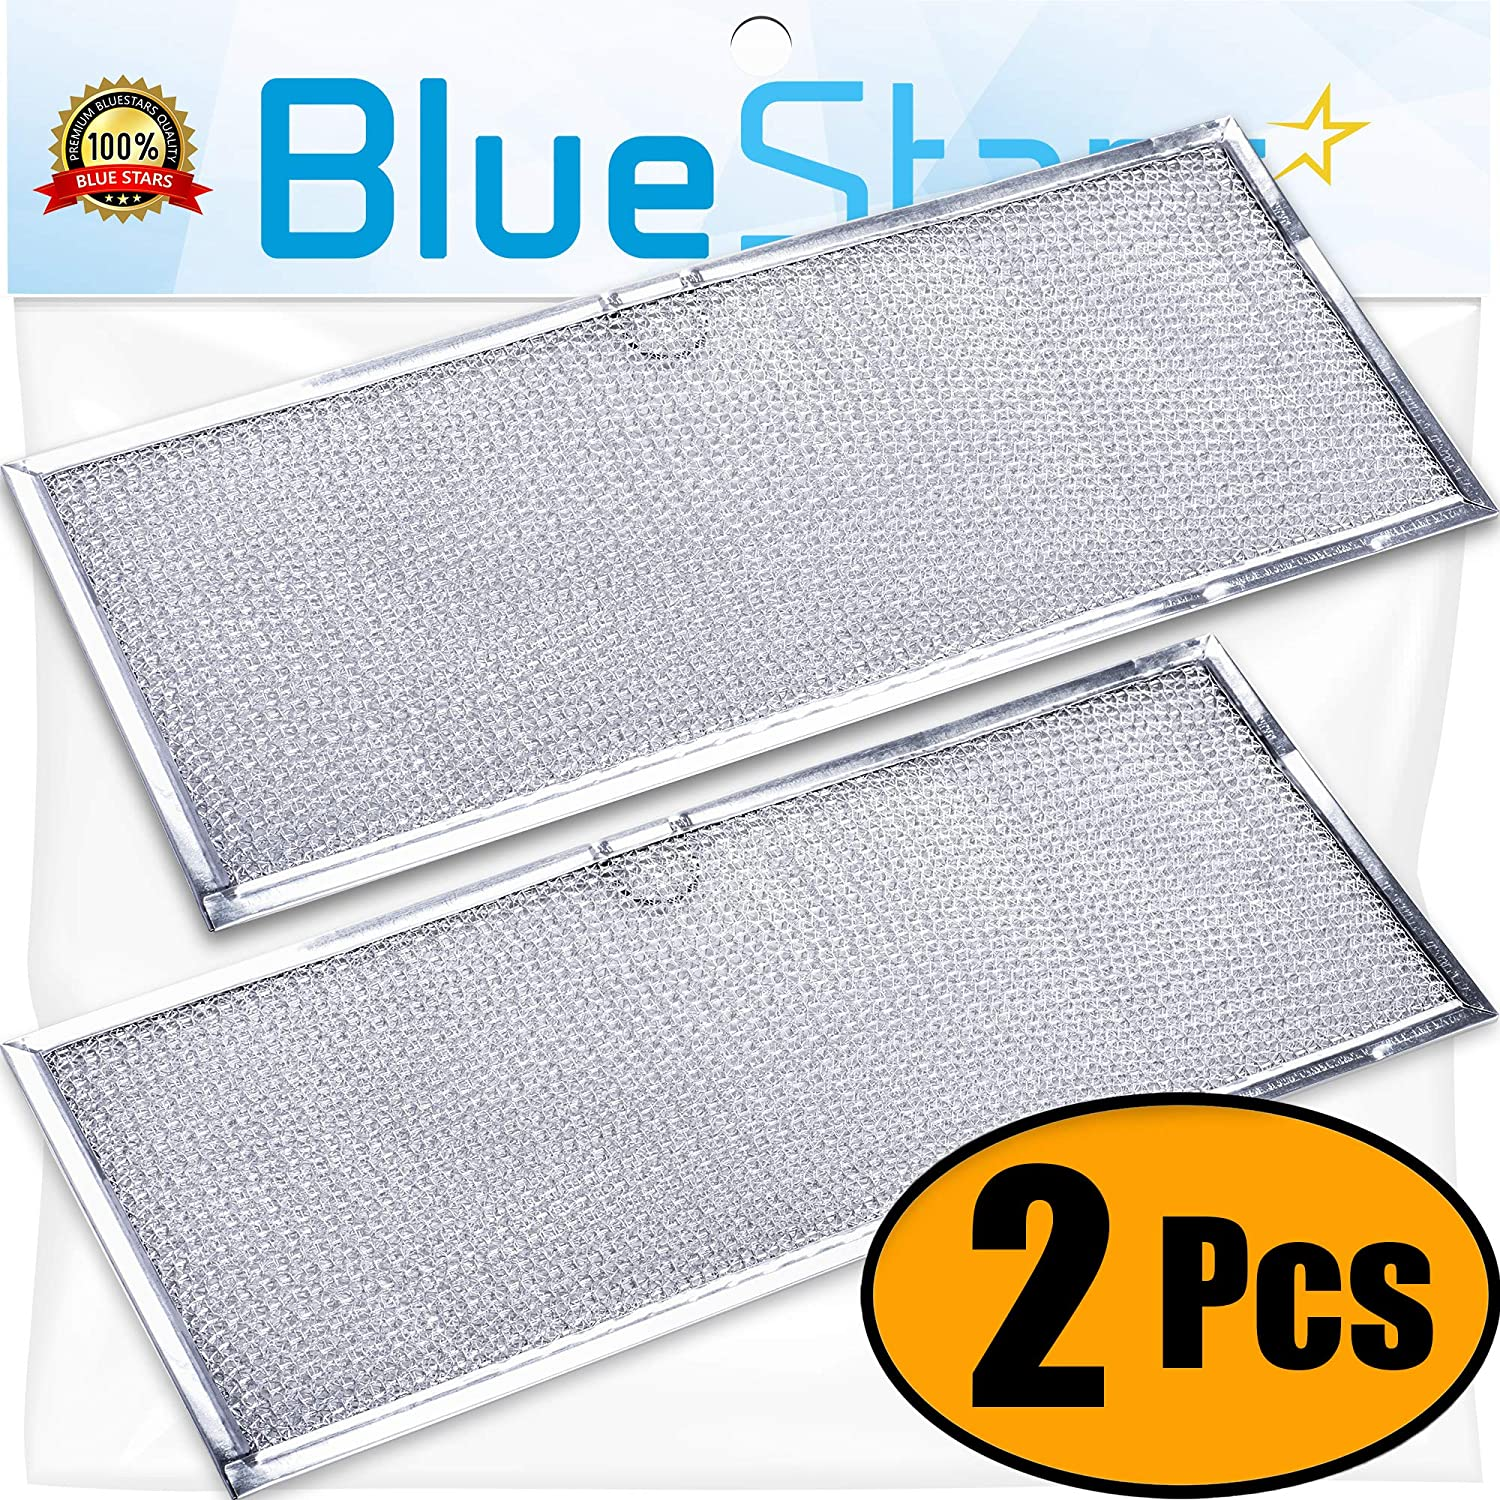 Ultra Durable 71002111 Aluminum Range Grease Filter Approx. 6-3/8 X 15-5/8 X 3/32 Inches by Blue Stars - Exact Fit for Jenn-Air & Kenmore Ranges - .Replace 715290, 8310P006-60, Y715290 - Pack of 2